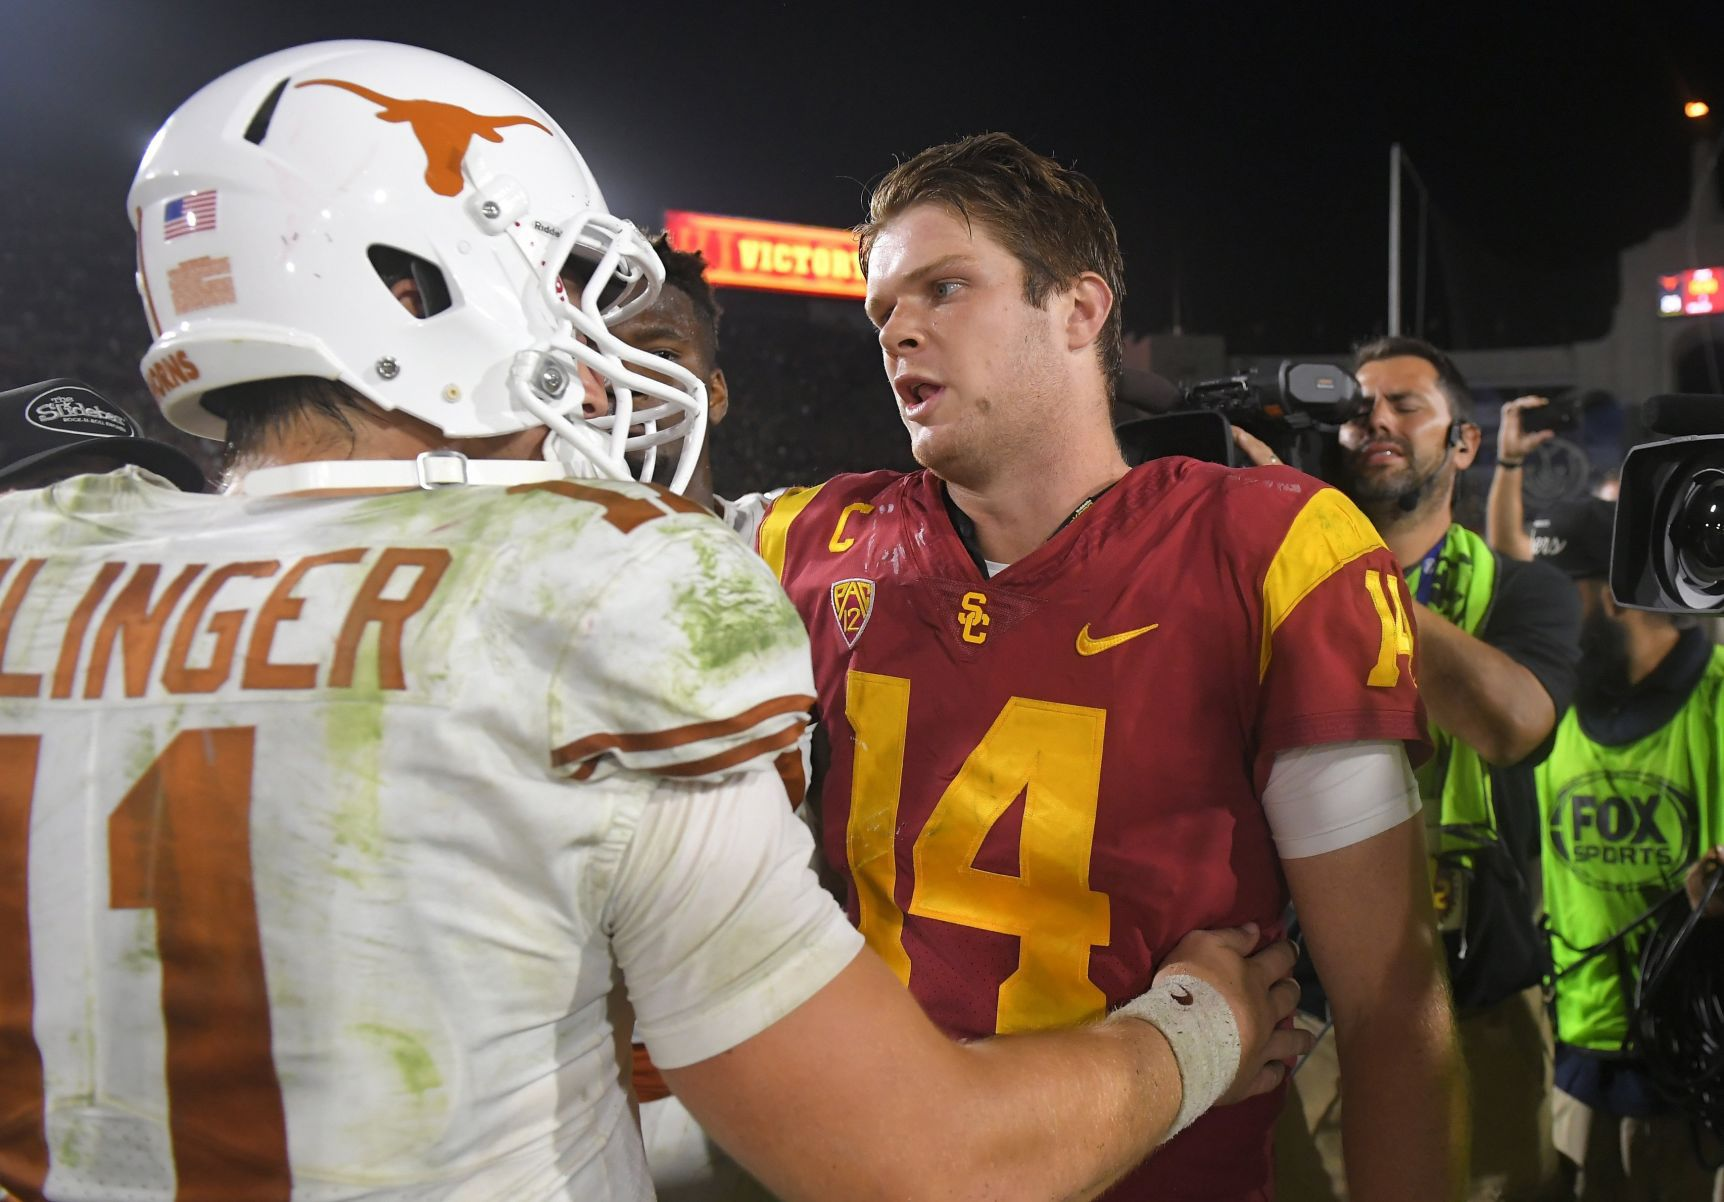 Miller: Sam Darnold, Trojans survive scare the size of Texas